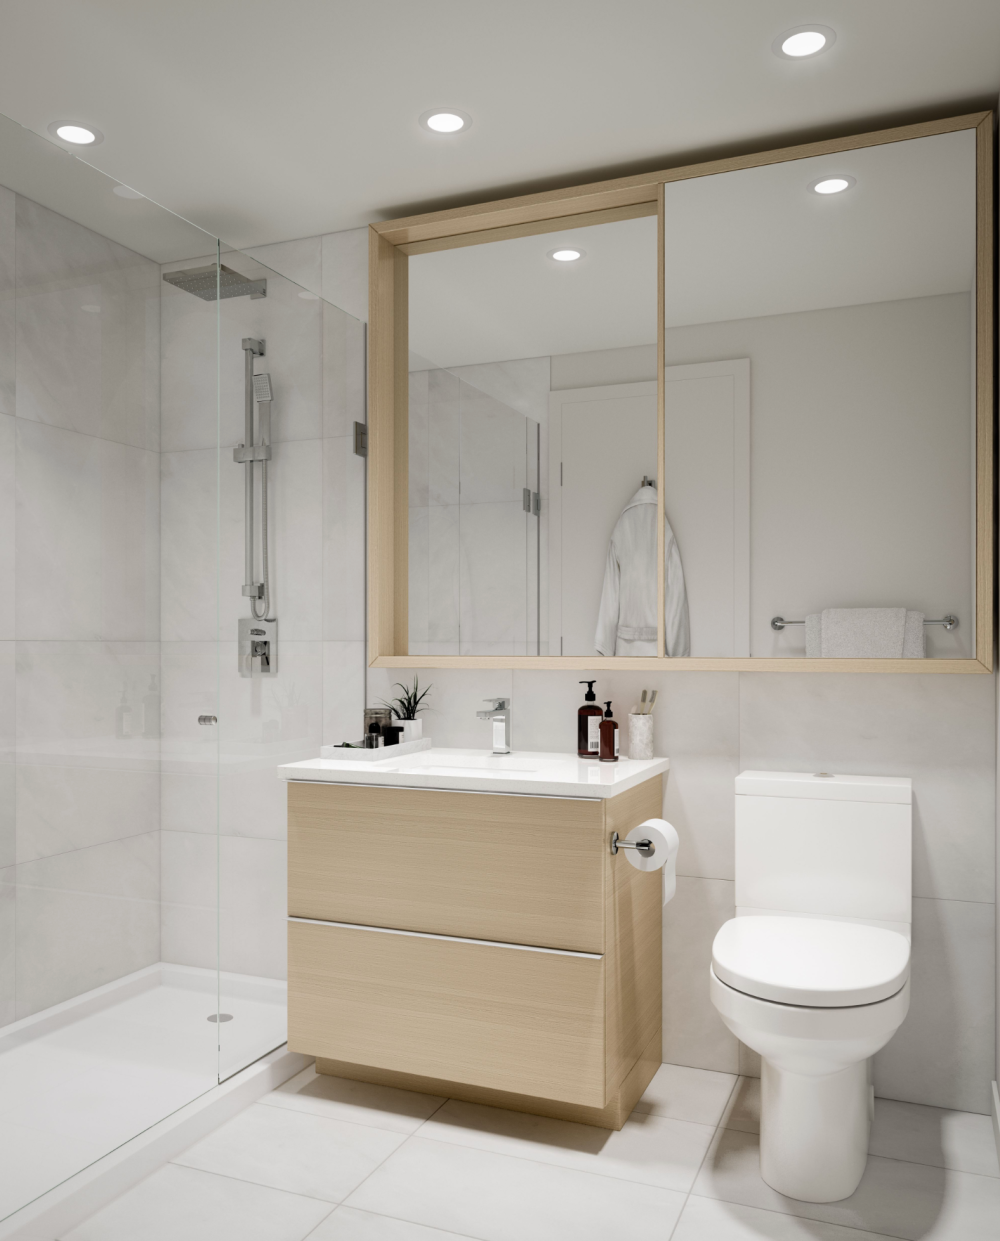 linea surrey - bathroom